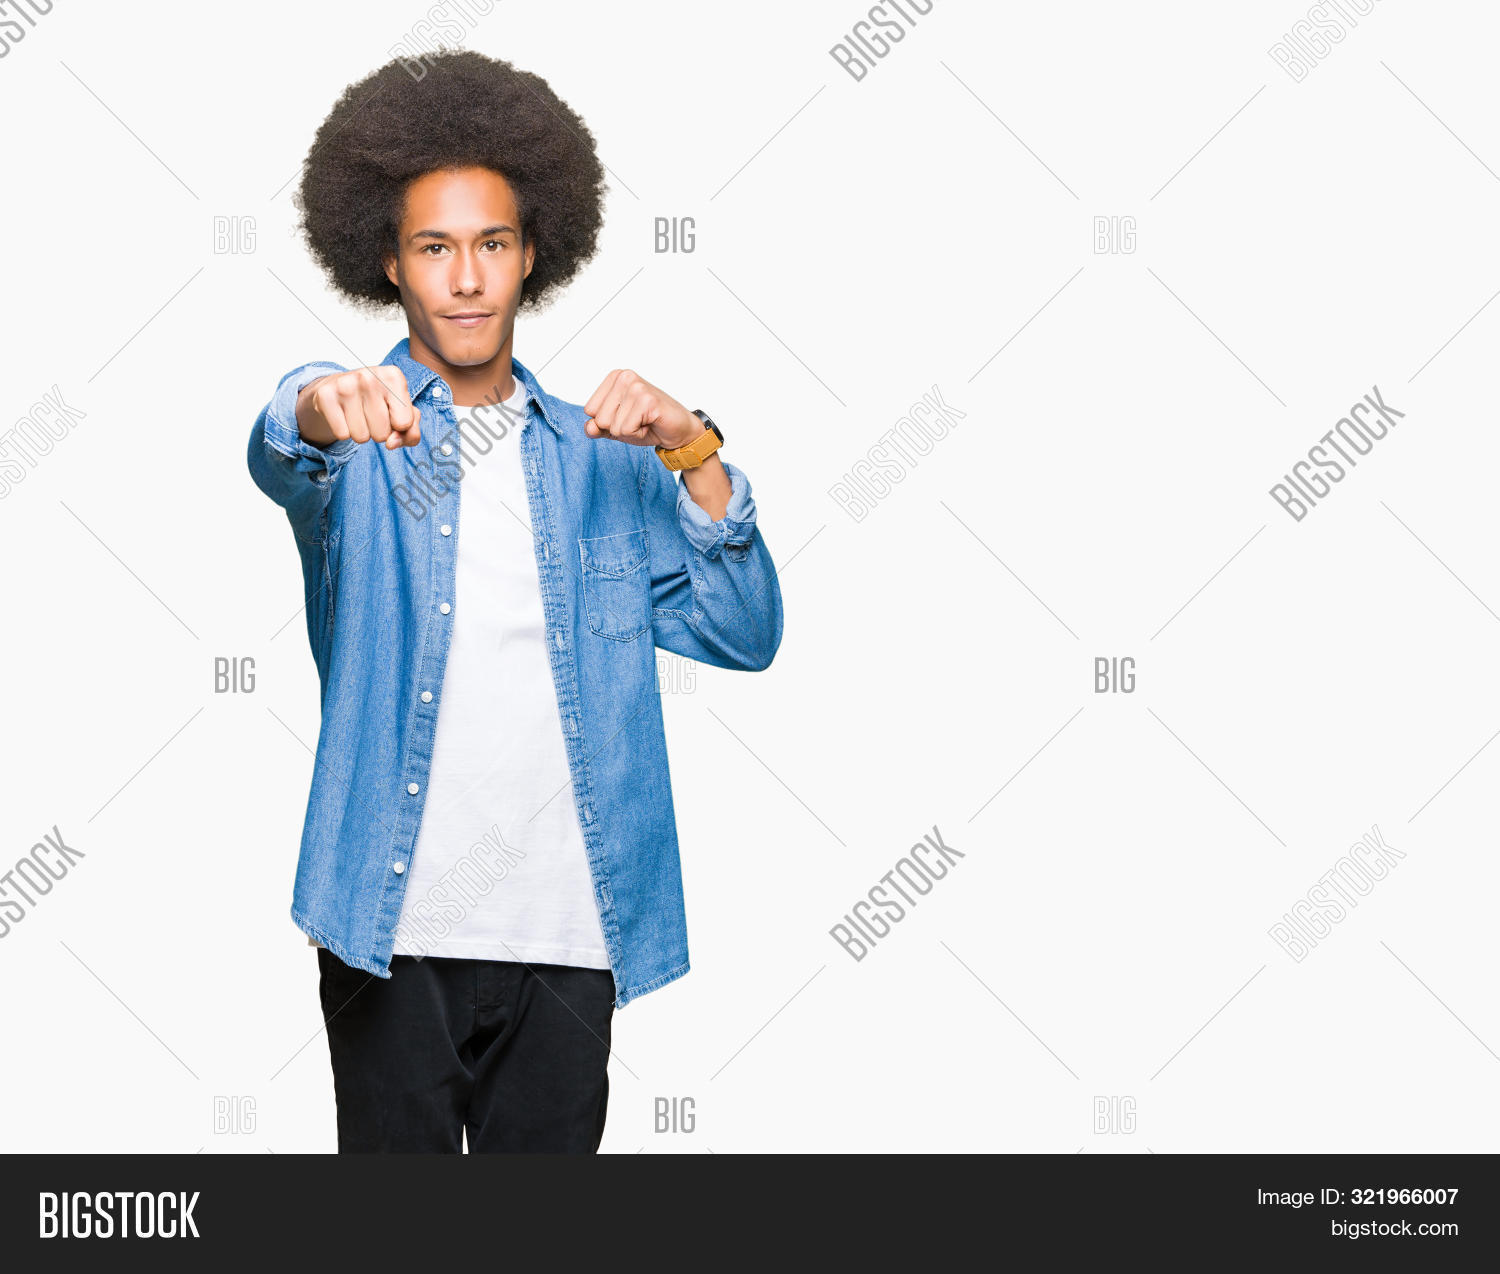 adult,african,afro,aggression,aggressive,american,anger,angry,arm,assault,attack,background,boxing,brazilian,casual,clenched,conflict,cool,cuban,denim,expression,fight,fist,force,gesture,hair,hairstyle,hand,handsome,hit,isolated,jacket,latin,man,negative,person,portrait,power,punch,sign,strength,strike,strong,symbol,teenager,threat,tough,victory,violence,young